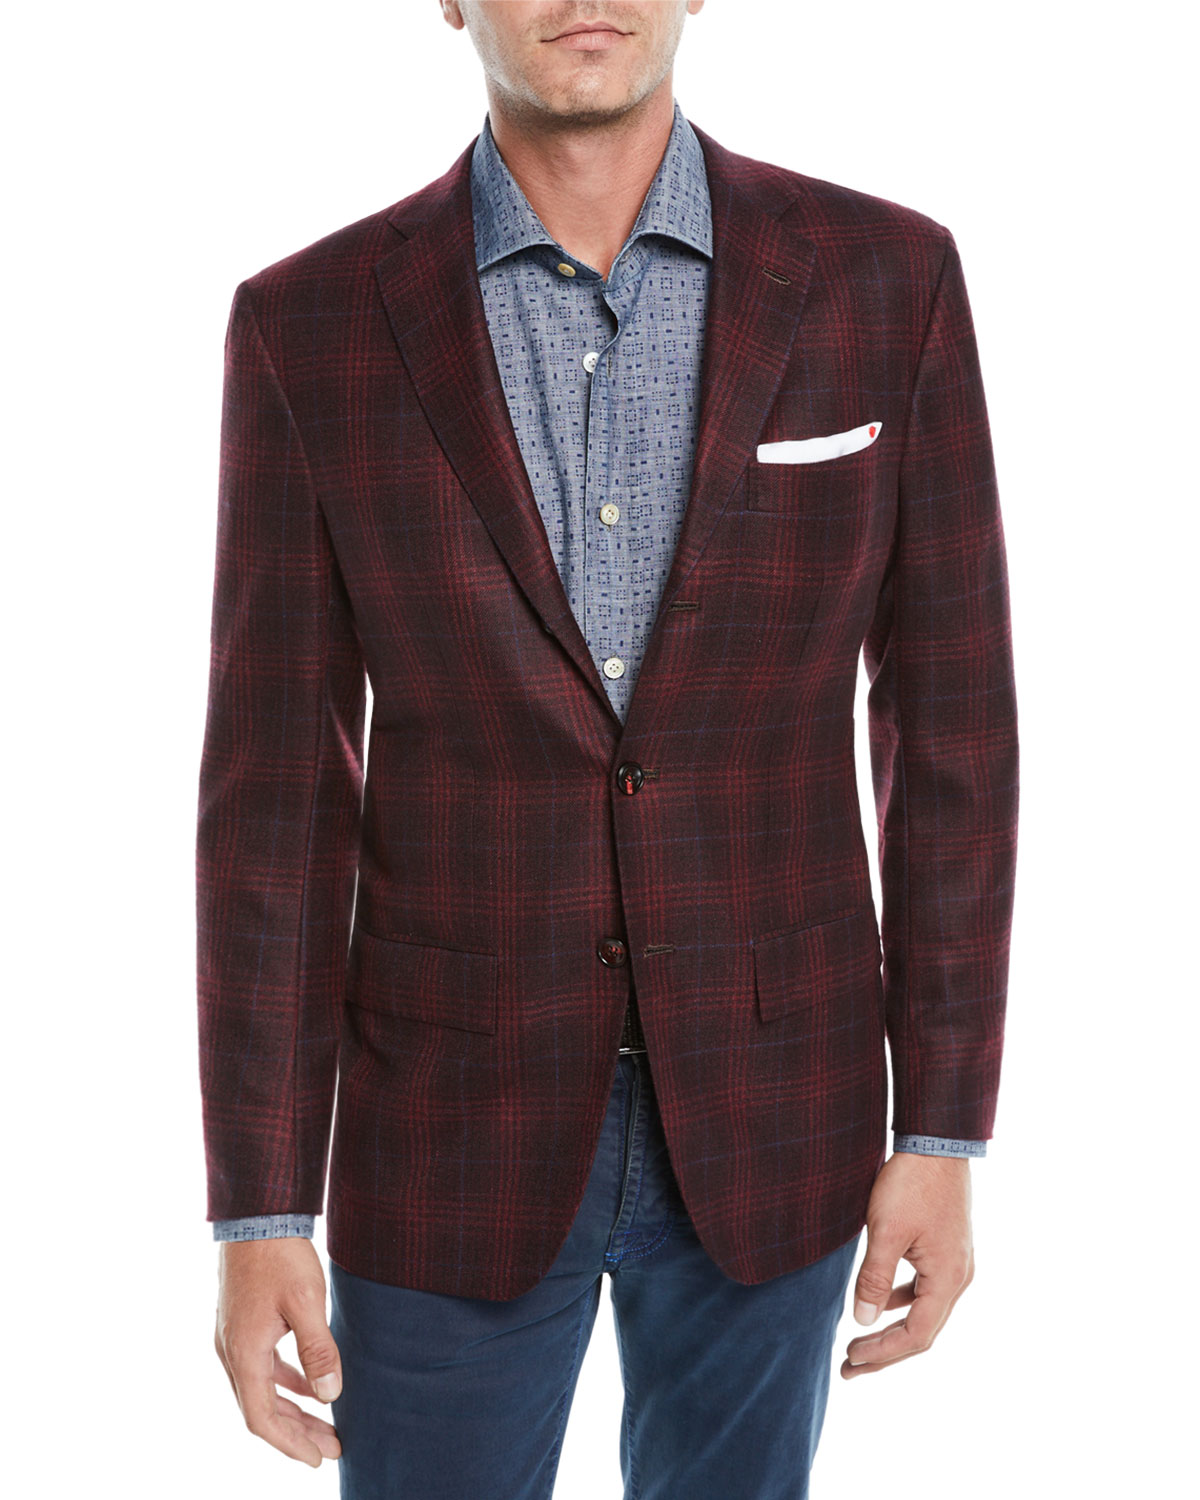 Men's Plaid Cashmere 3-Button Sport Coat Jacket